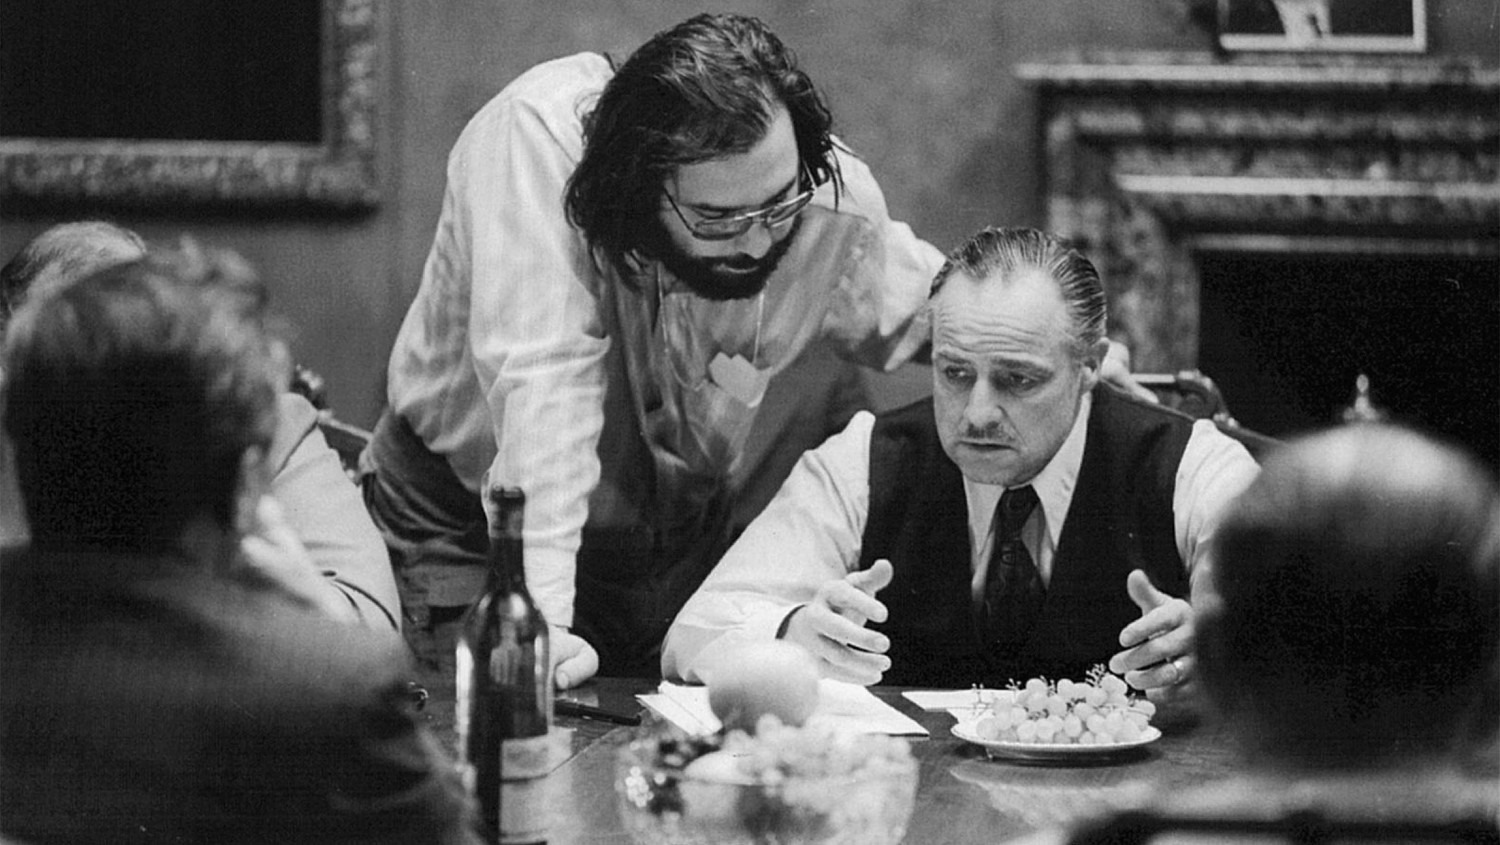 Francis Ford Coppola instruerer Marlon Brando under optagelserne til The Godfather (1972). (Foto: Paramount Pictures)